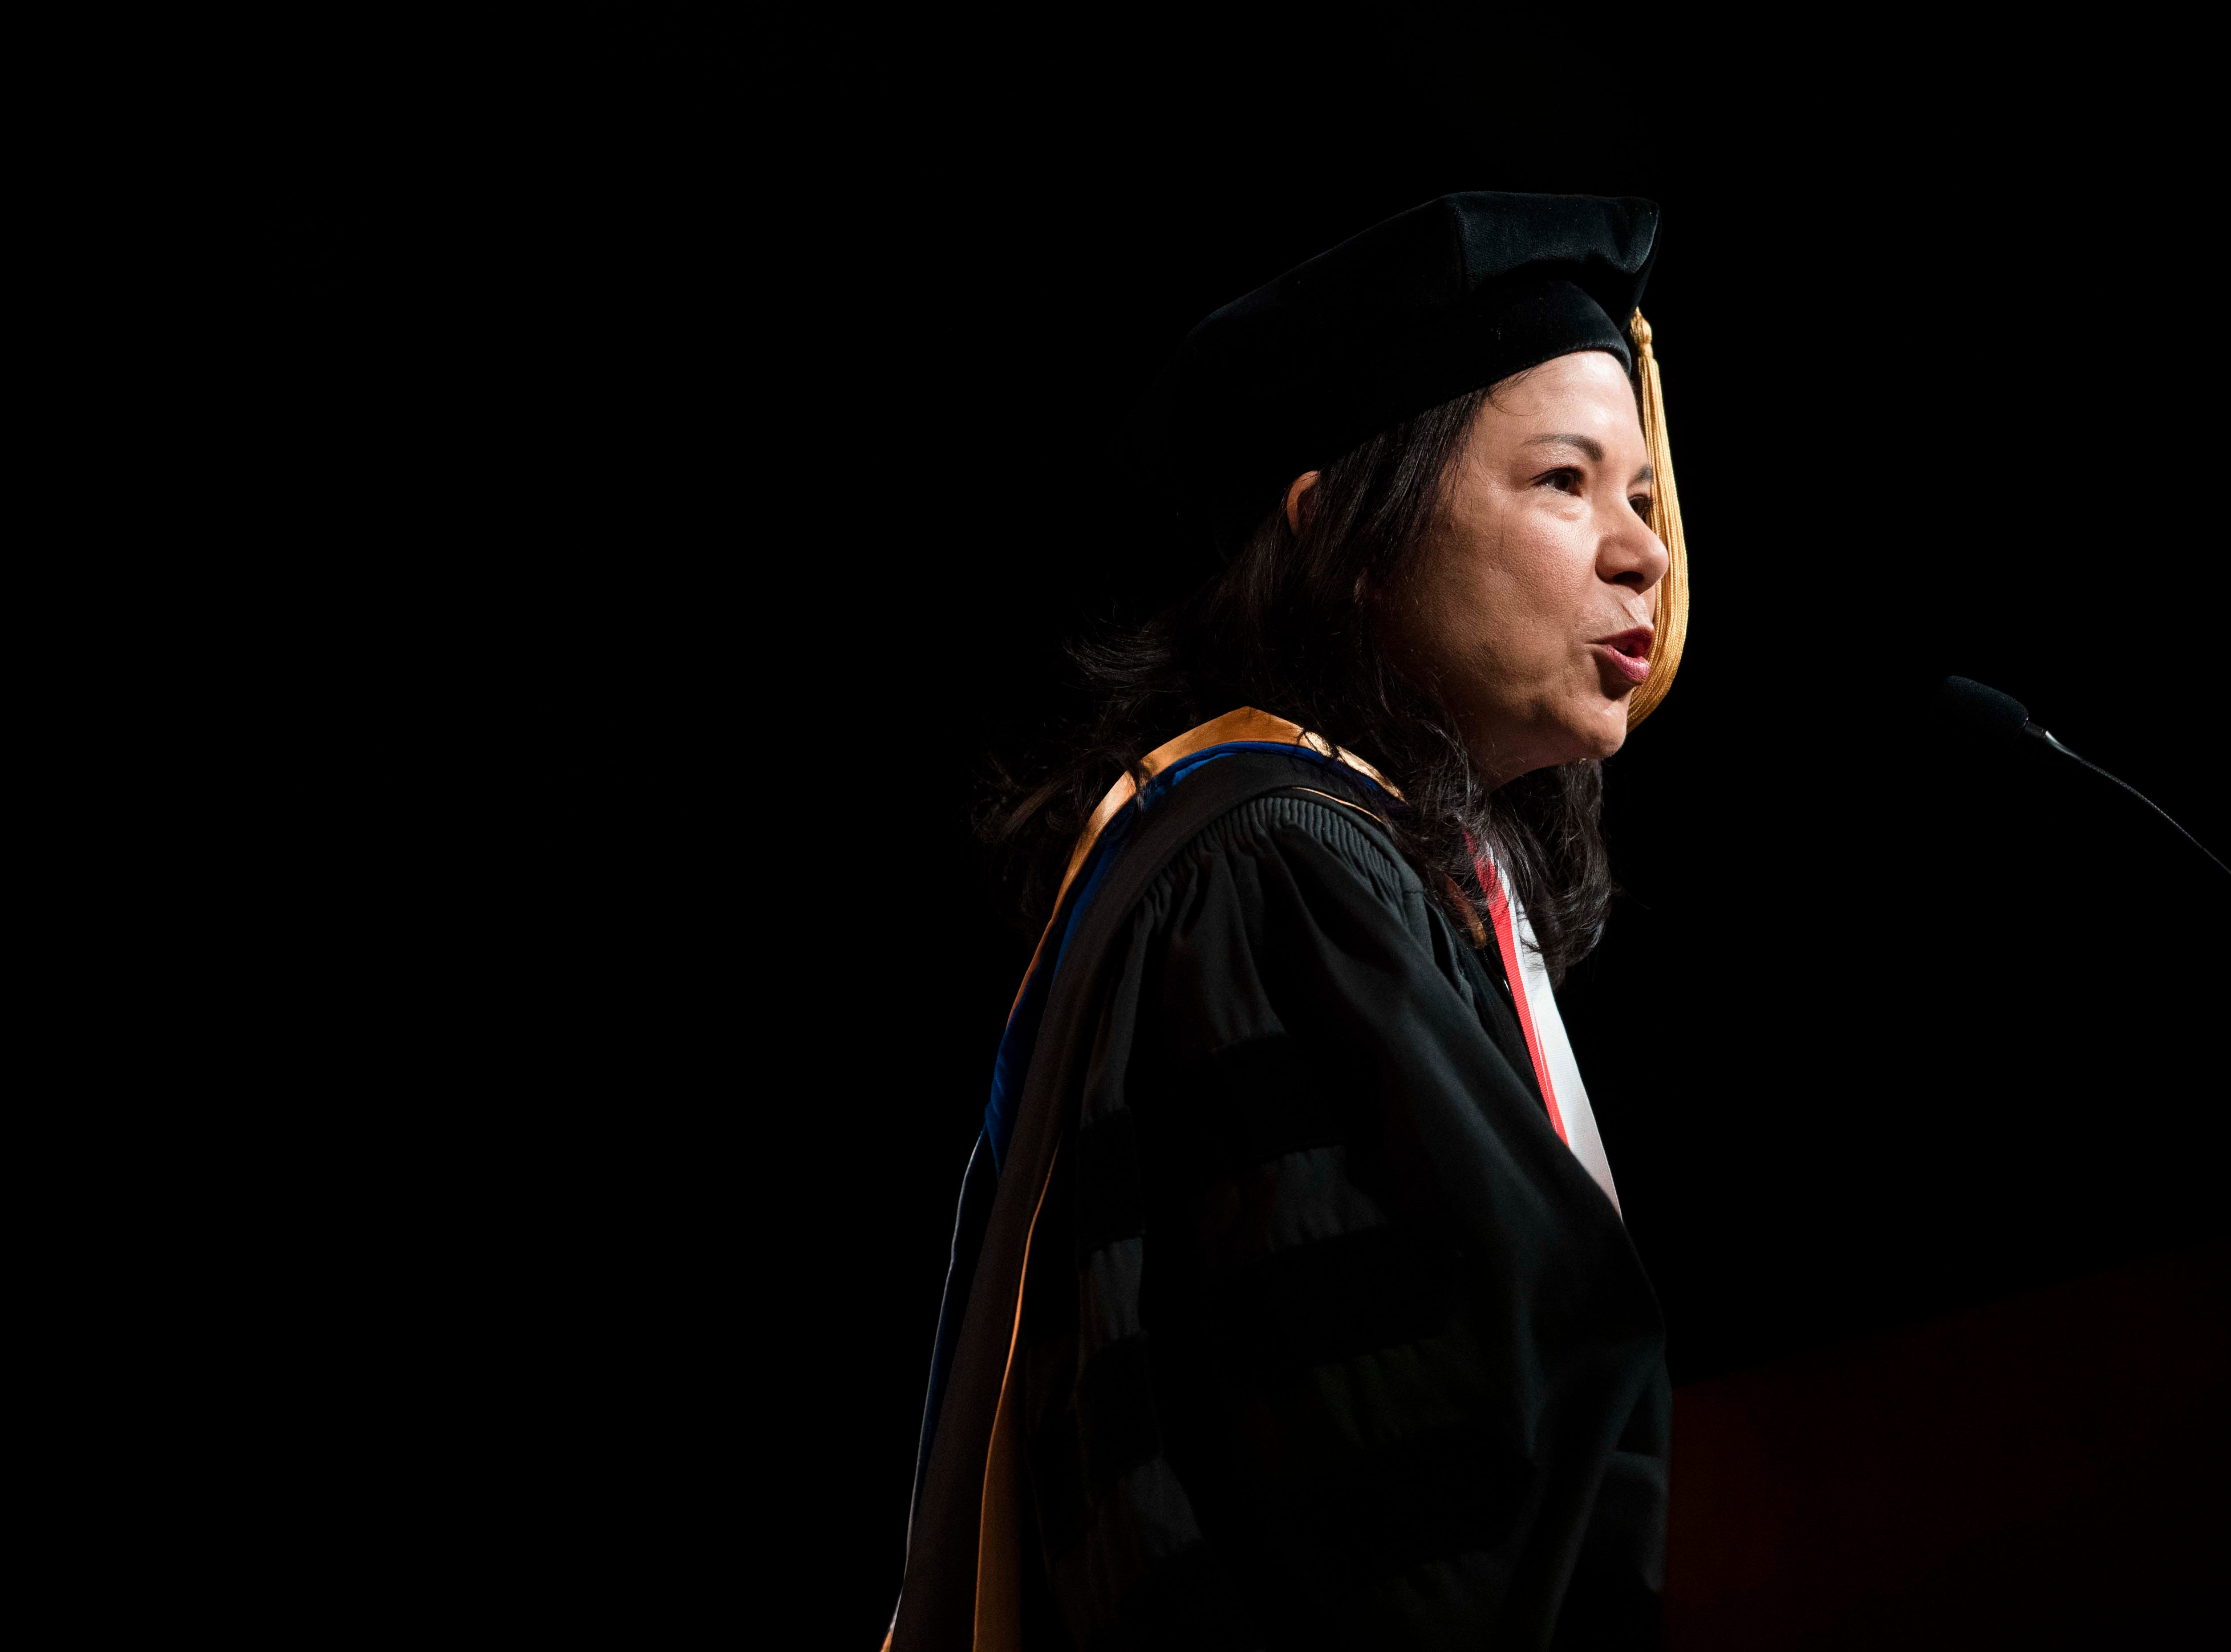 Commencement Speaker Nancy-Ann DeParle speaks during University of Tennessee's College of Arts and Sciences commencement in Thompson-Boling arena in Knoxville, Saturday, May 11, 2019.